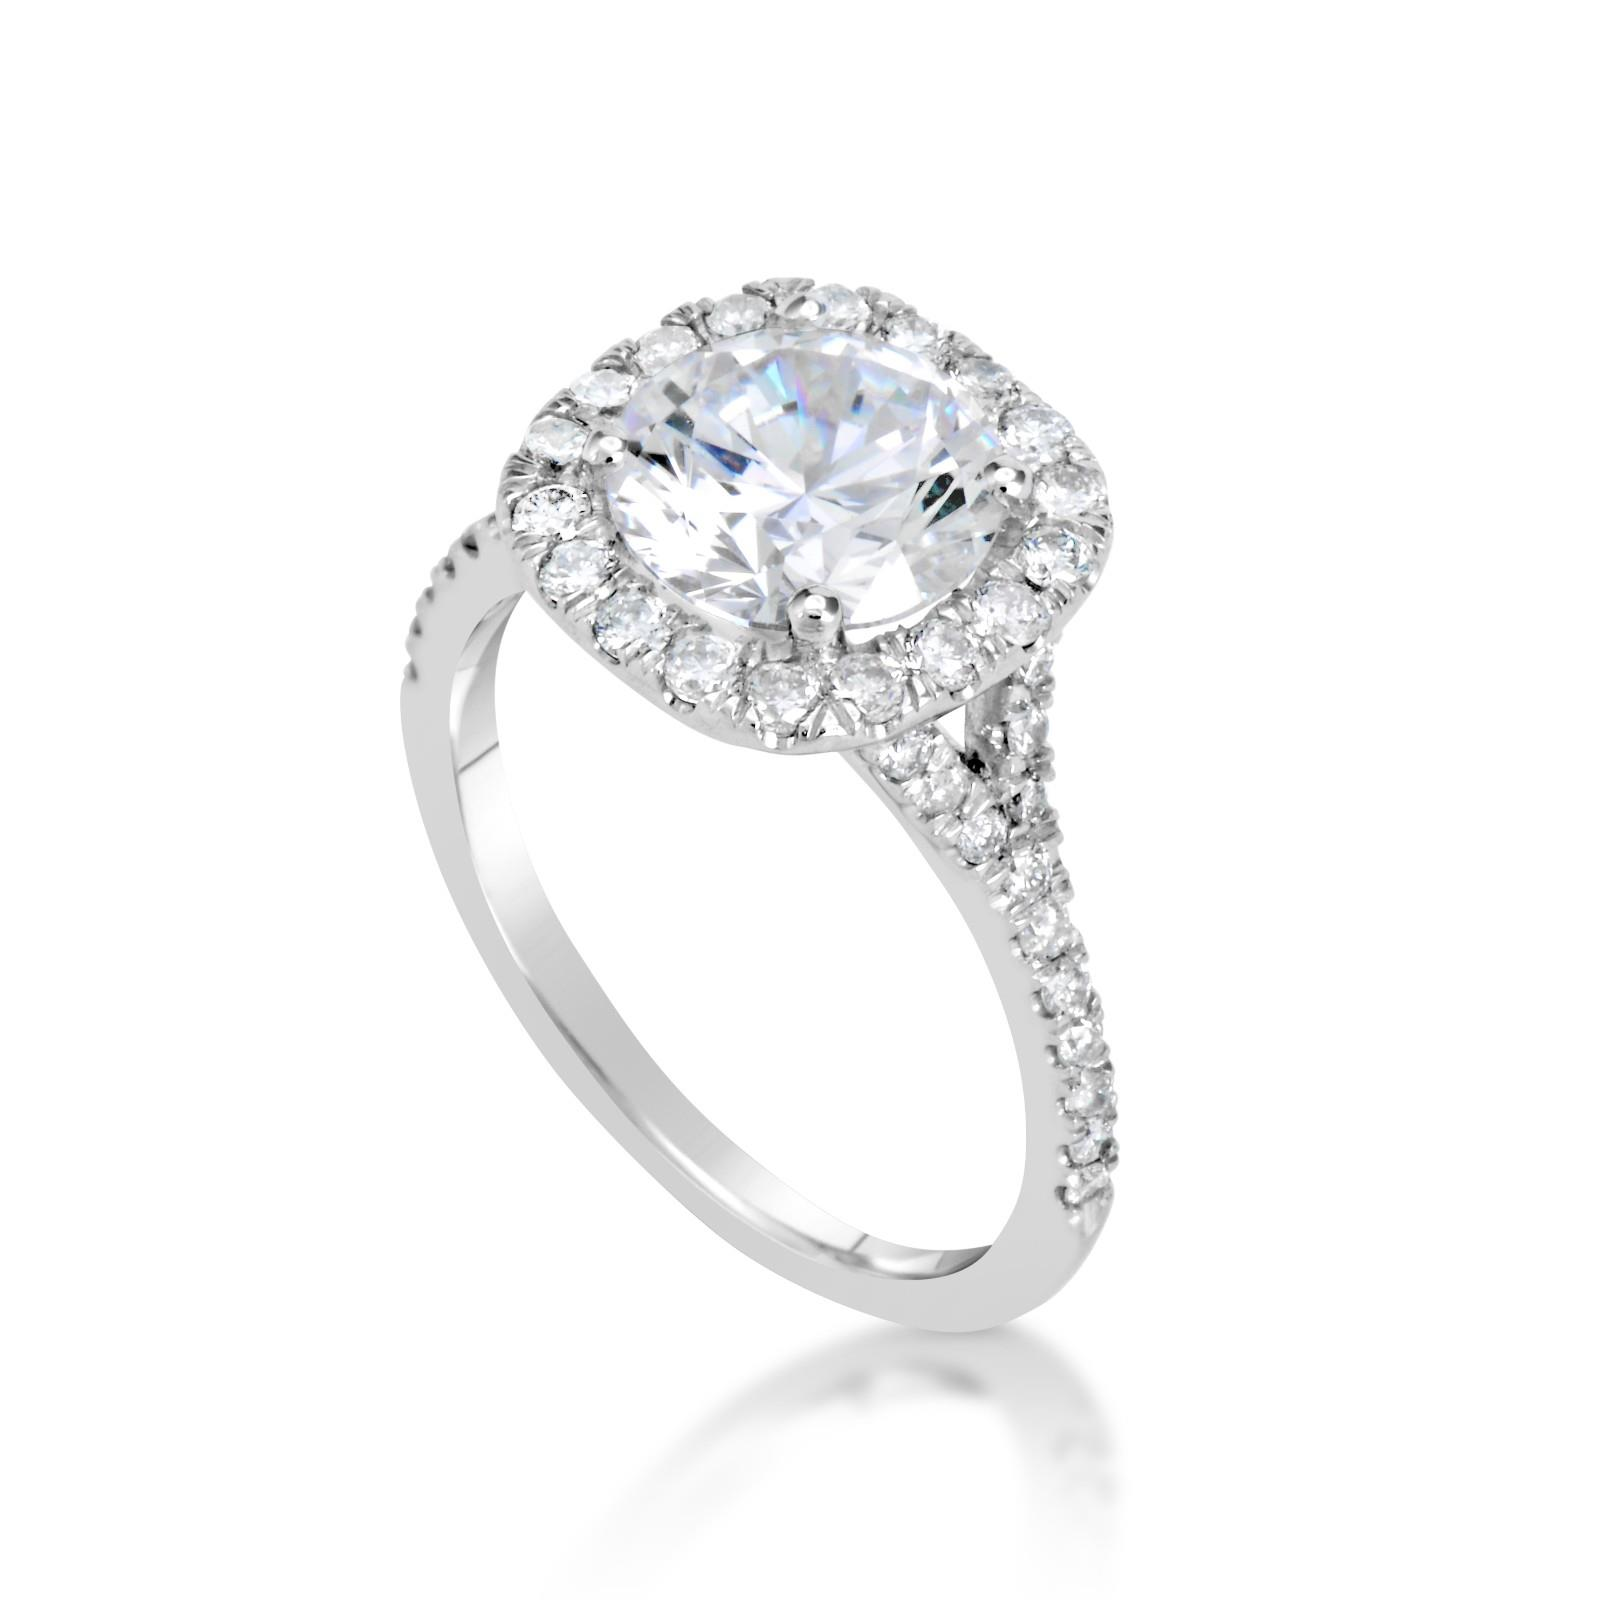 2 8 Ct Si1 D Round Cut Diamond Solitaire Engagement Ring